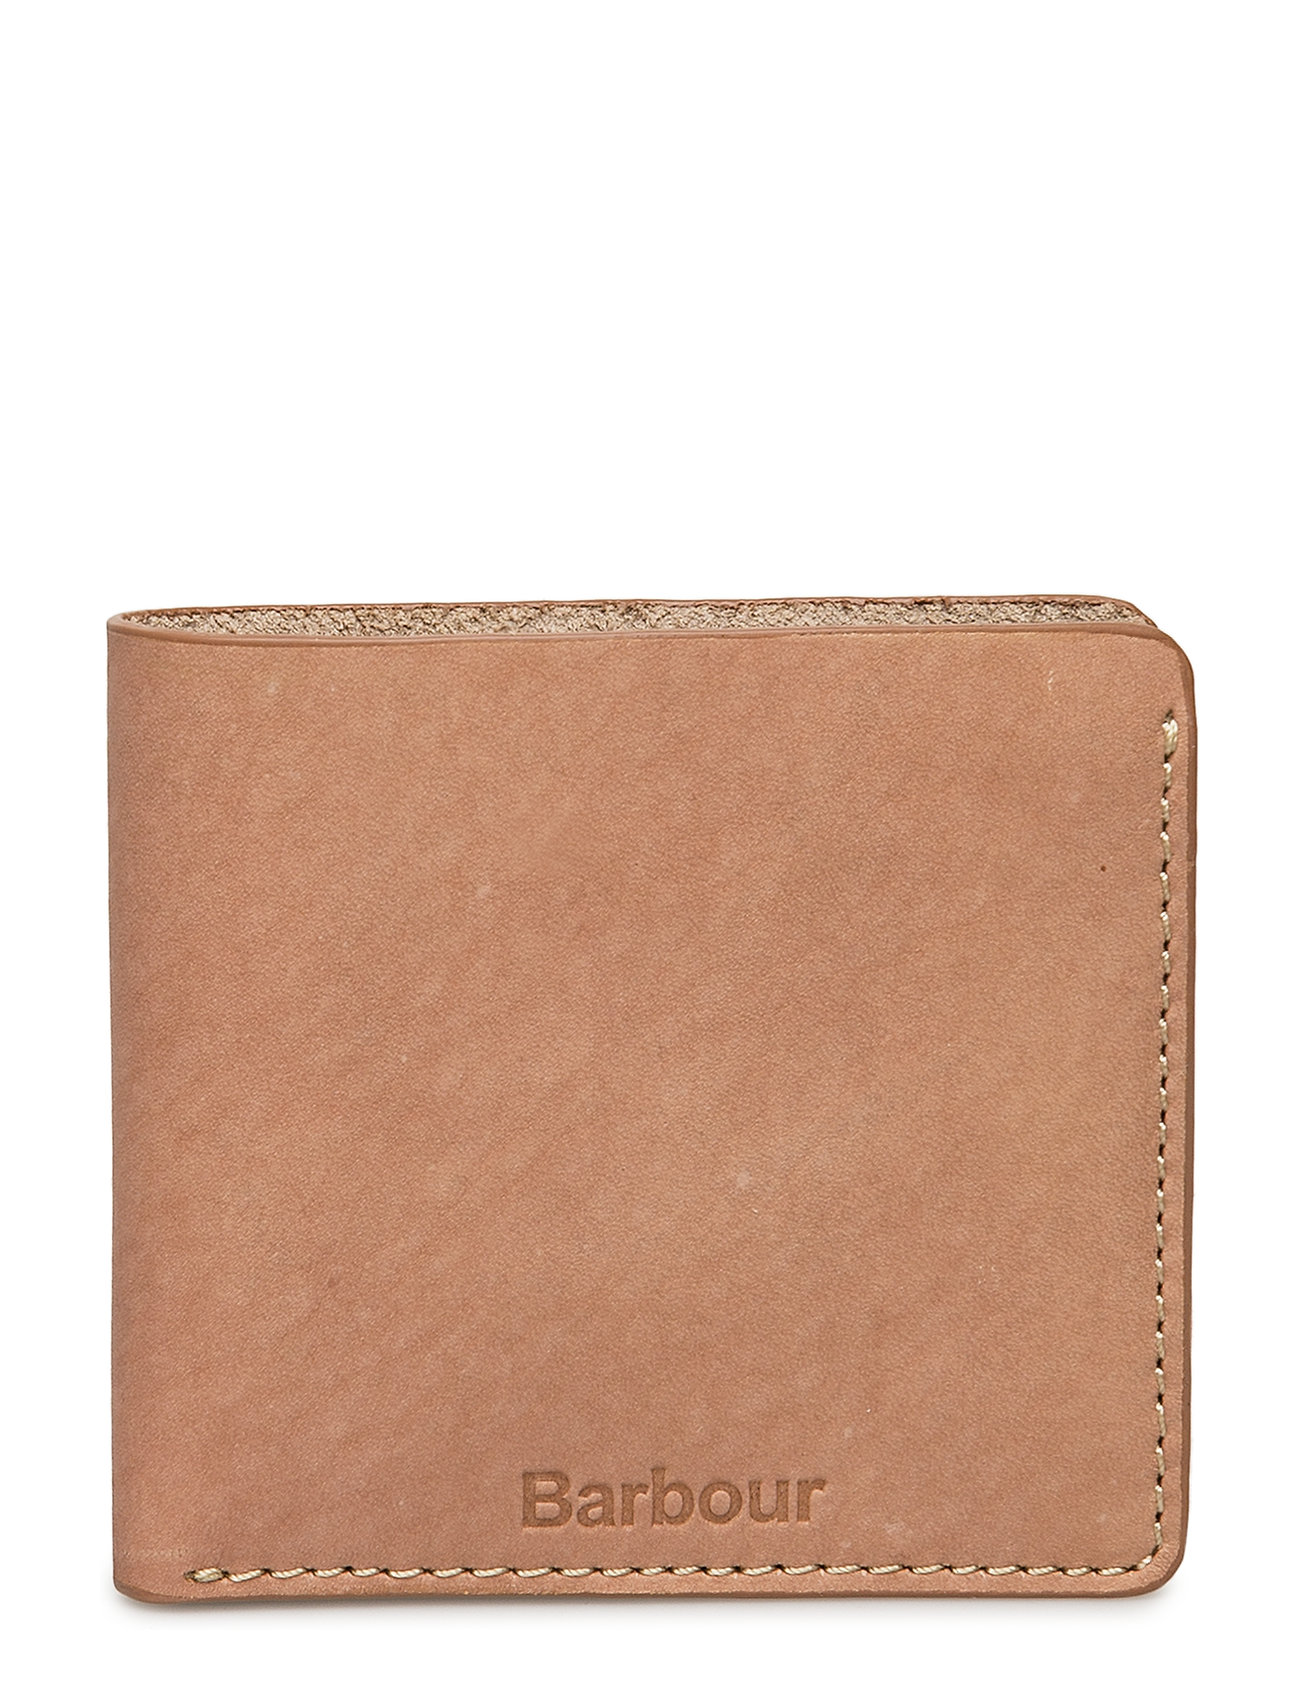 Barbour Artisan Wallet